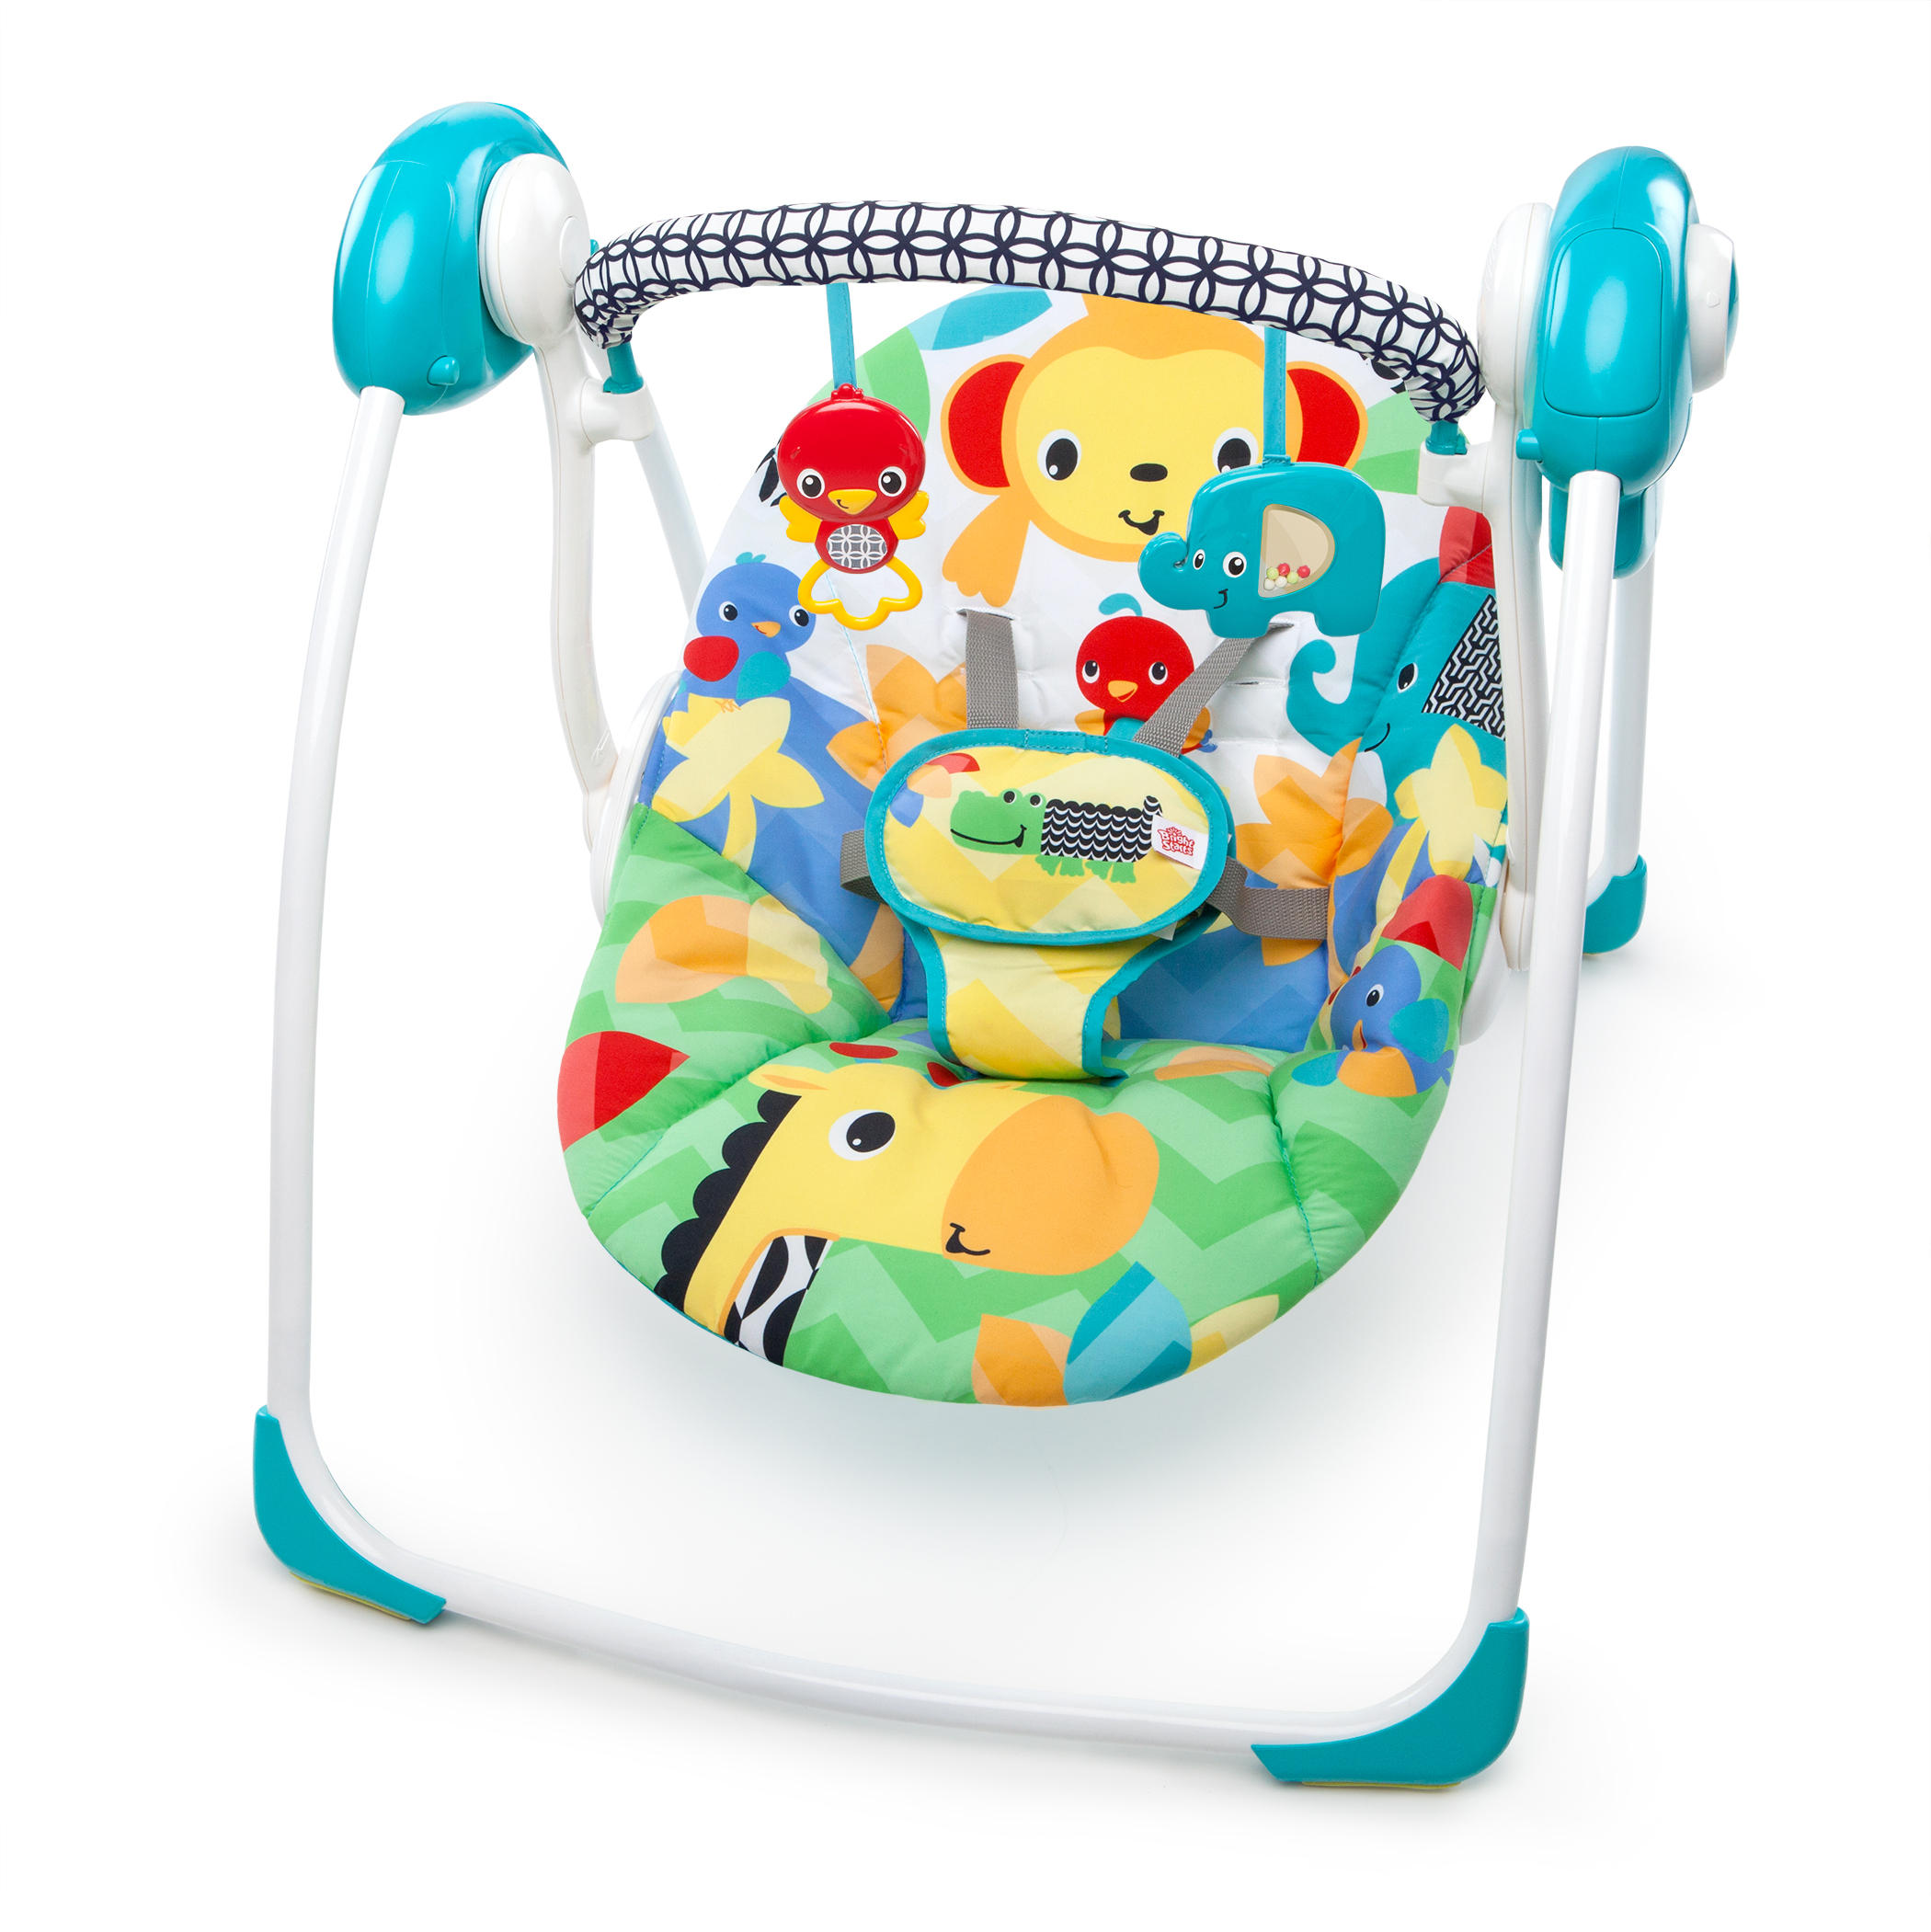 Bright Starts Portable Swing   Safari Smiles